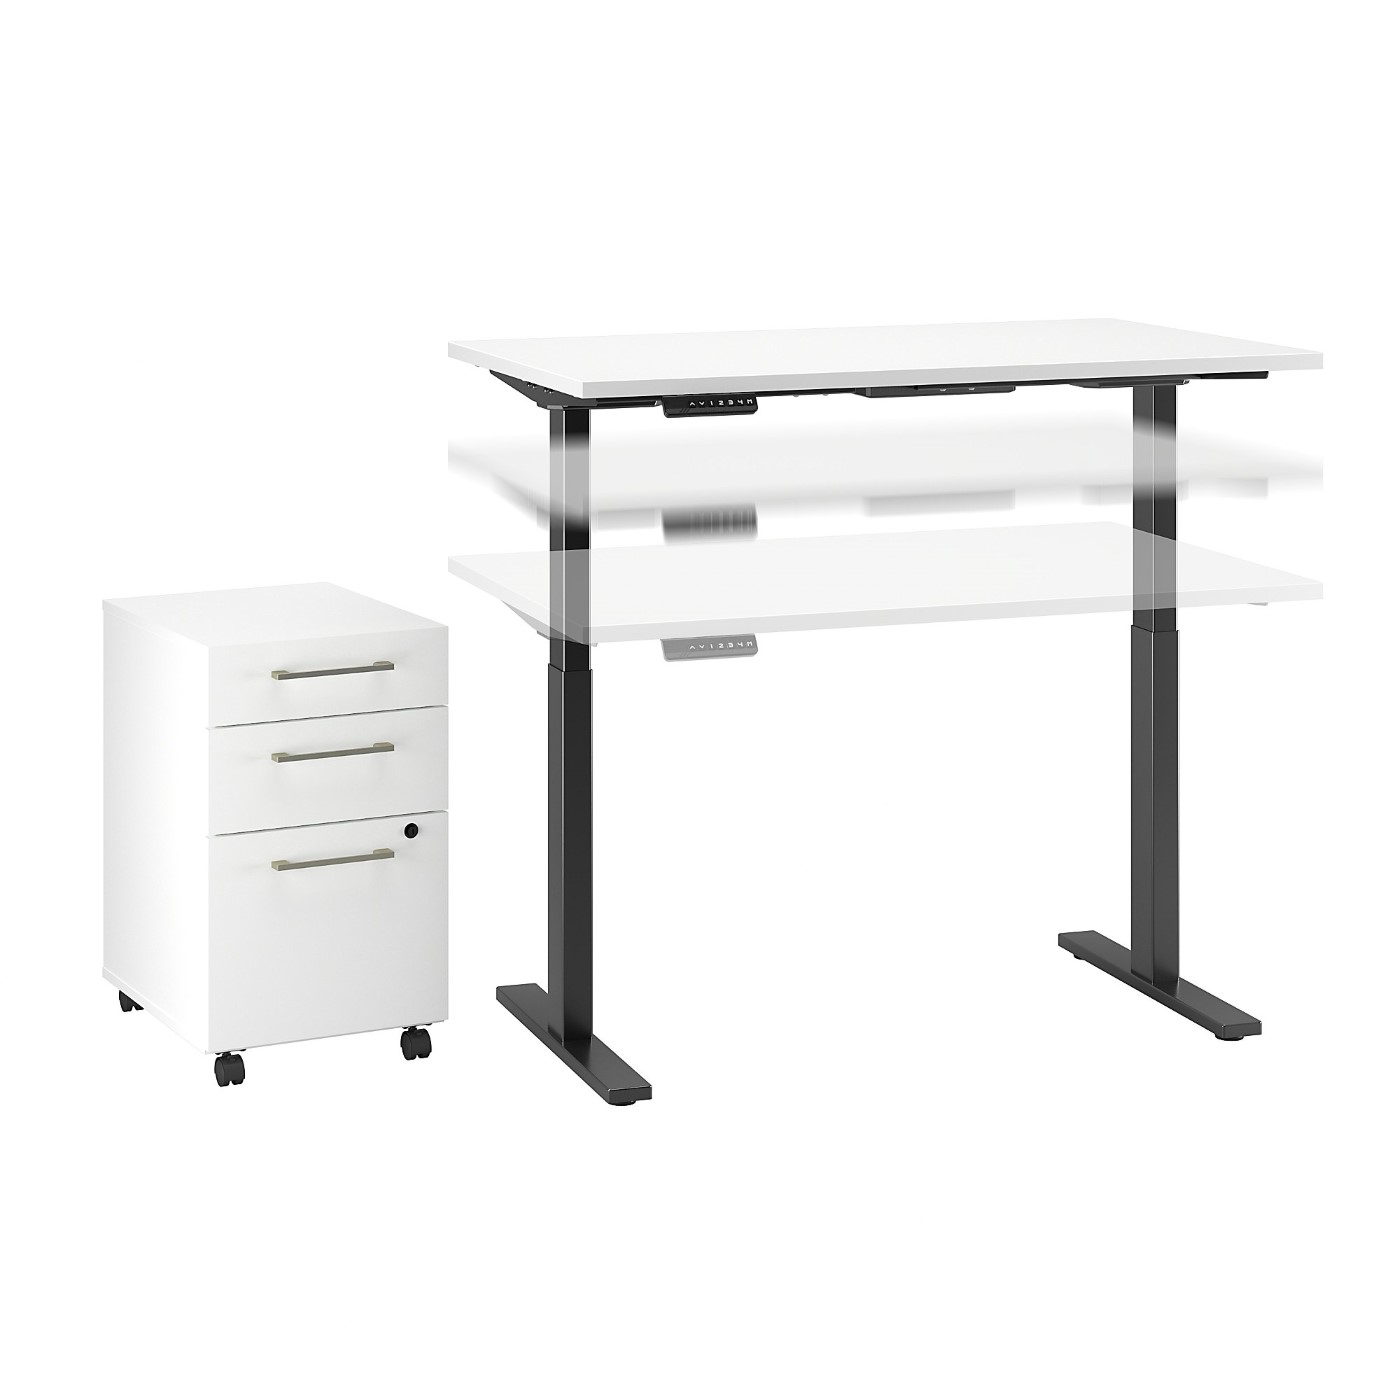 MOVE 60 SERIES BY BUSH BUSINESS FURNITURE 48W X 24D HEIGHT WHITE ADJUSTABLE STANDING DESK WITH STORAGE. FREE SHIPPING